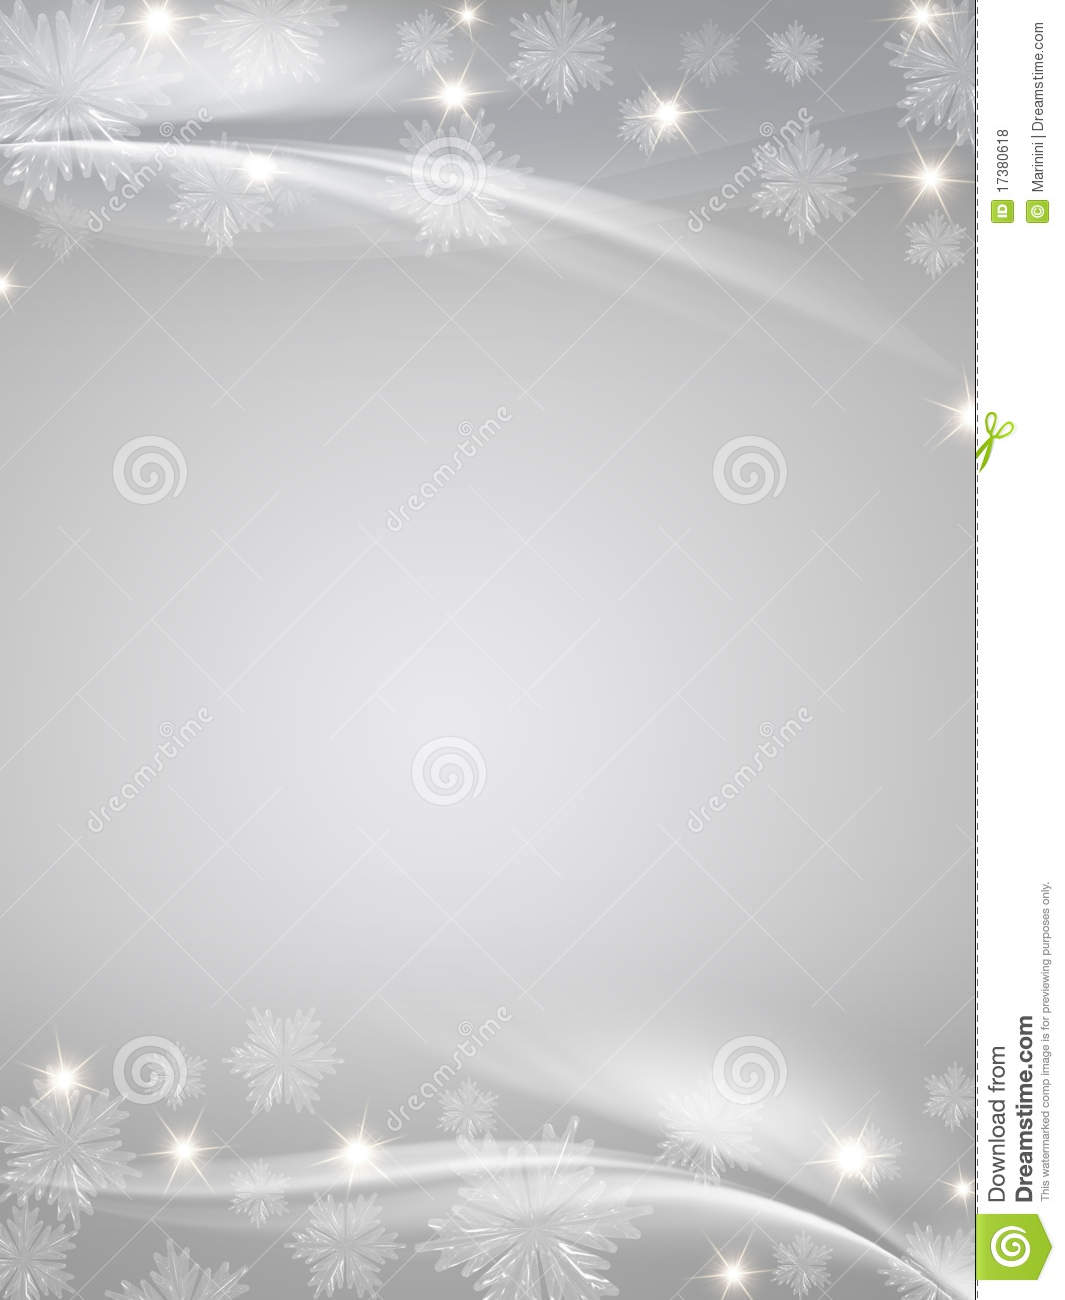 Crystal Snowflakes Grey Background Royalty Free Stock